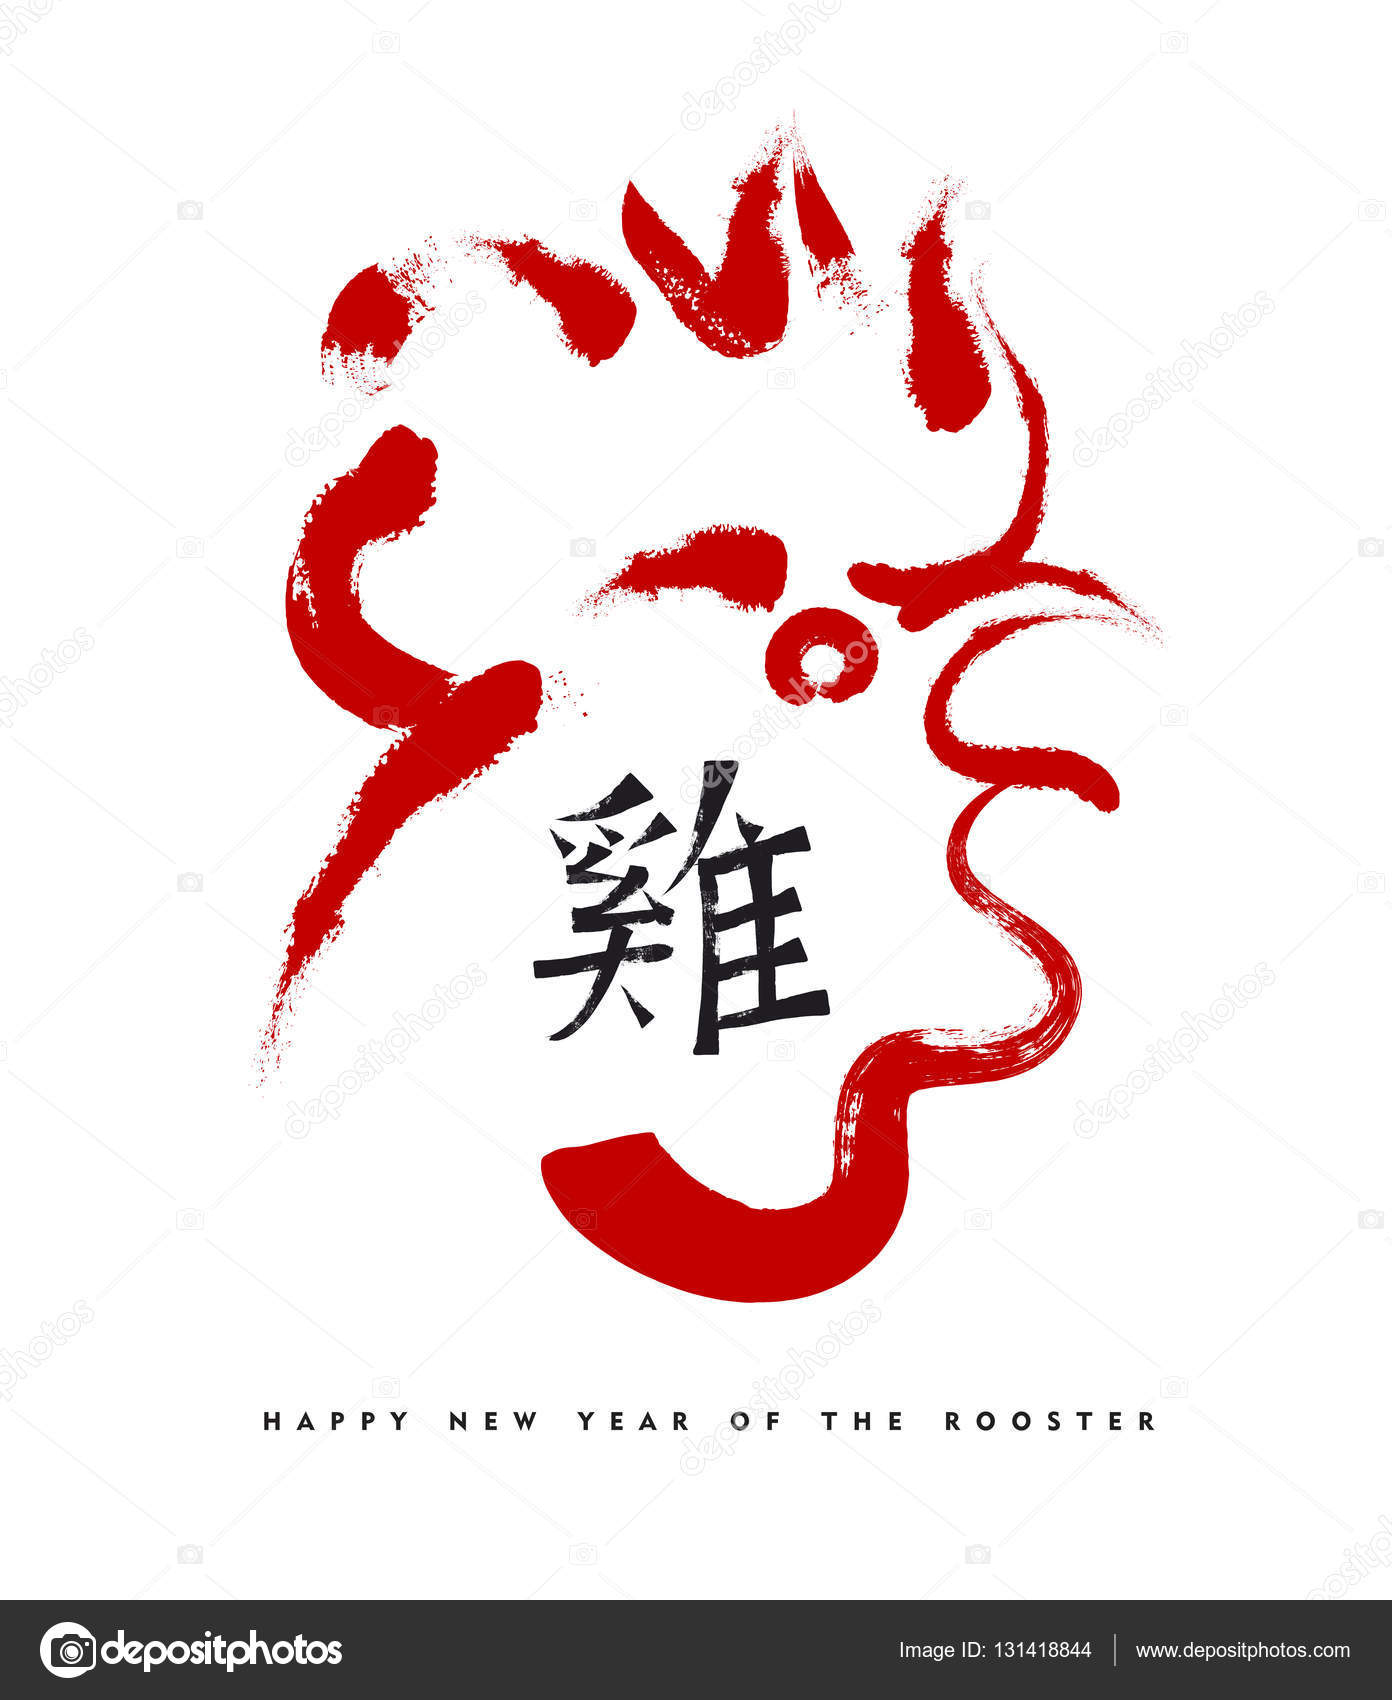 http://s4.picofile.com/file/8287224692/depositphotos_131418844_stock_illustration_chinese_new_year_2017_rooster.jpg